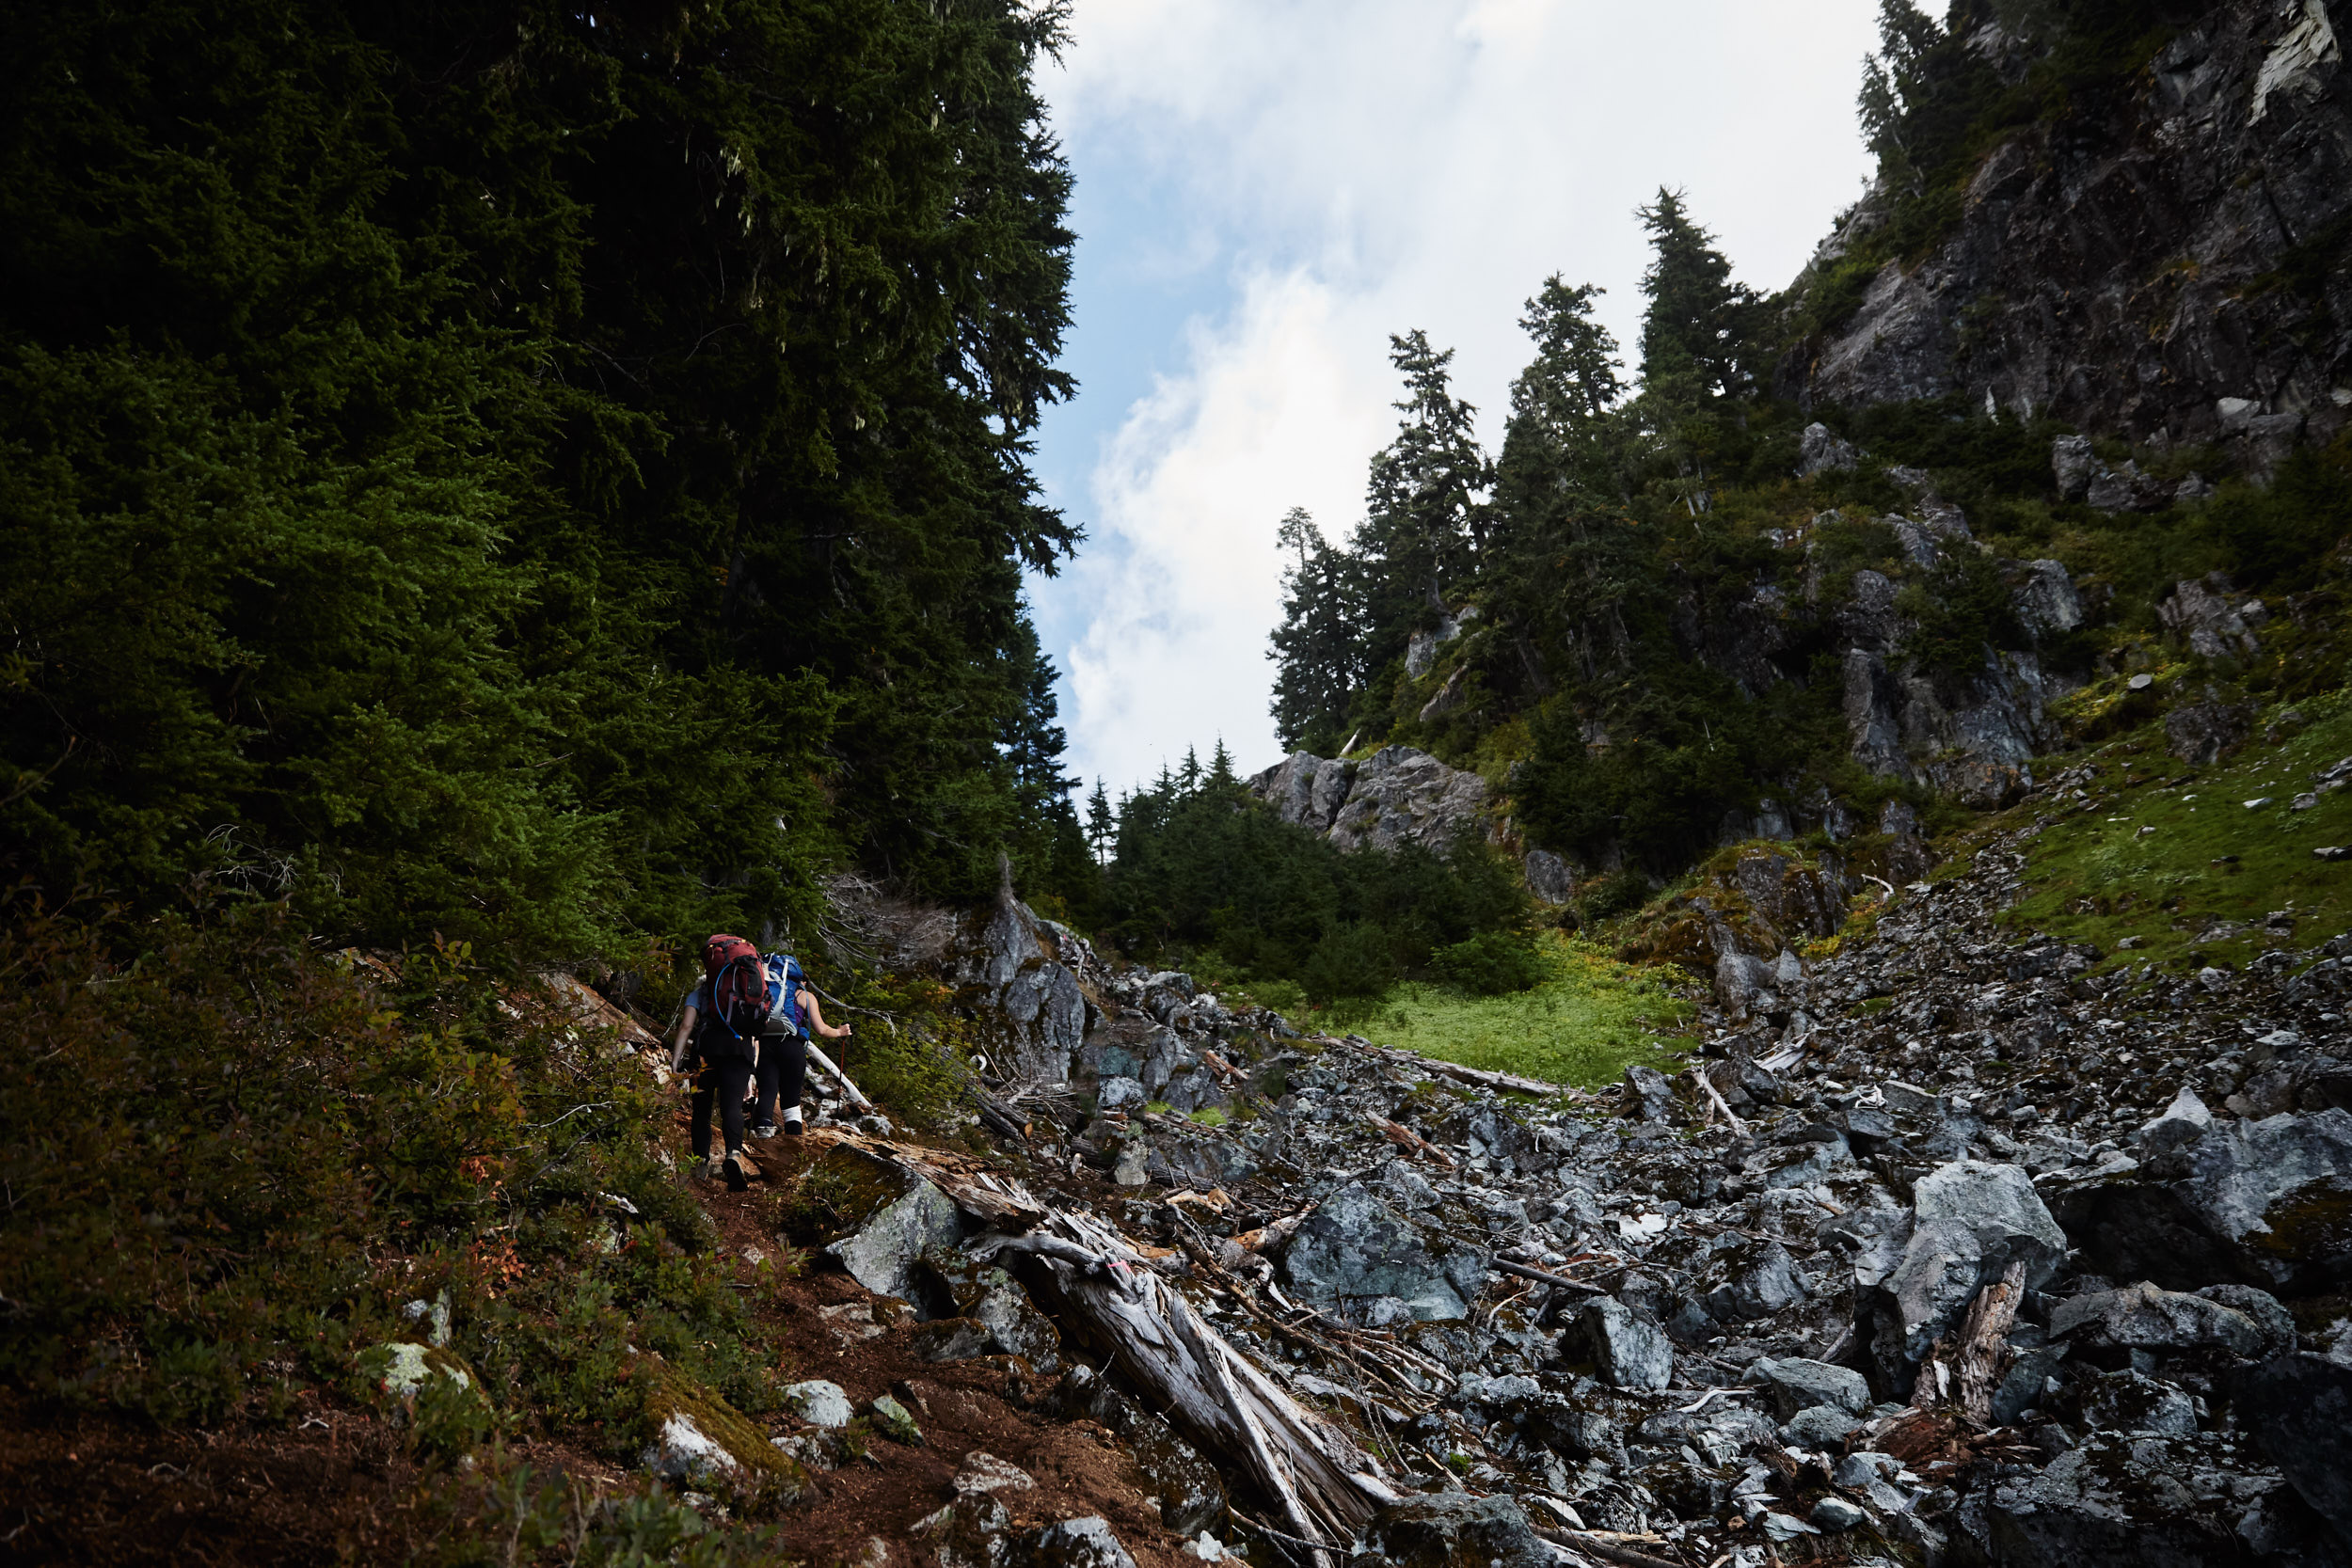 The last 200m has you hiking up a steep boulder field.